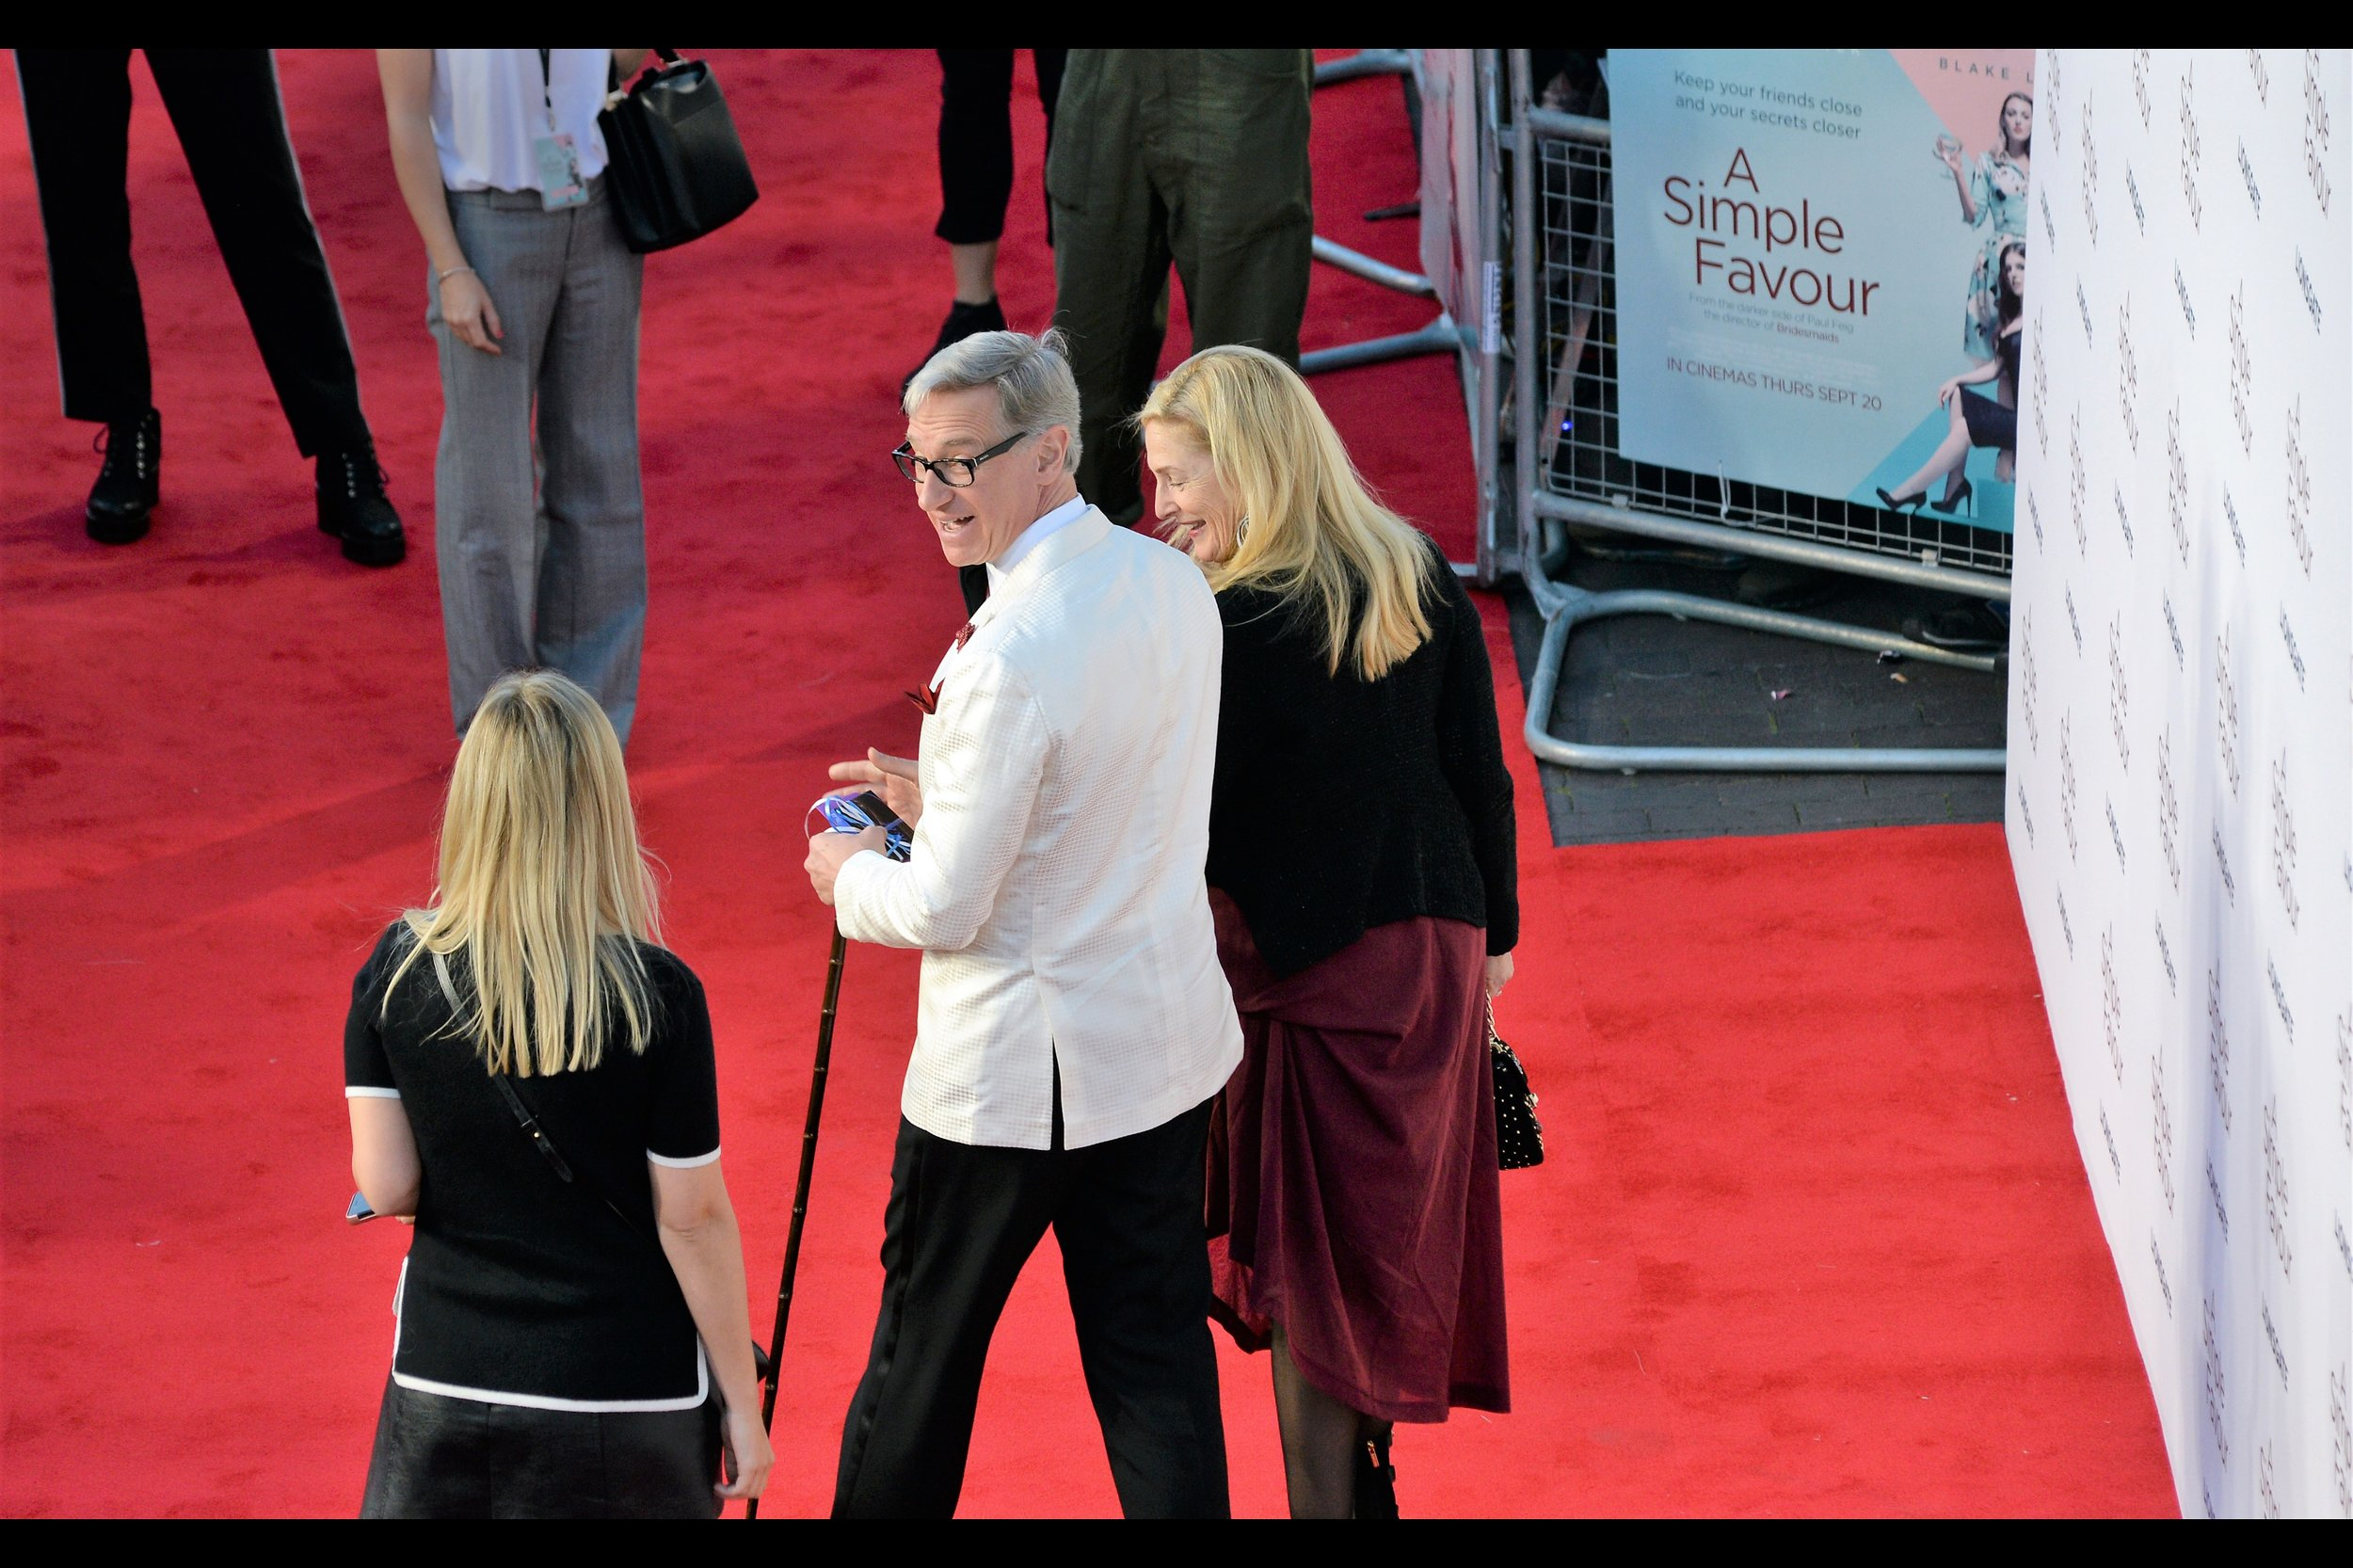 """And now I've got your bluray too. And all you'll remember later on is how well I was dressed. That's magic.""  It's currently    London Fashion Week   , and I myself am wearing jeans, a pair of sketchers, and a black t-shirt under a Marks & Spencer suit jacket. I was wearing vintage Raybans earlier, but I took them off to take photos…"